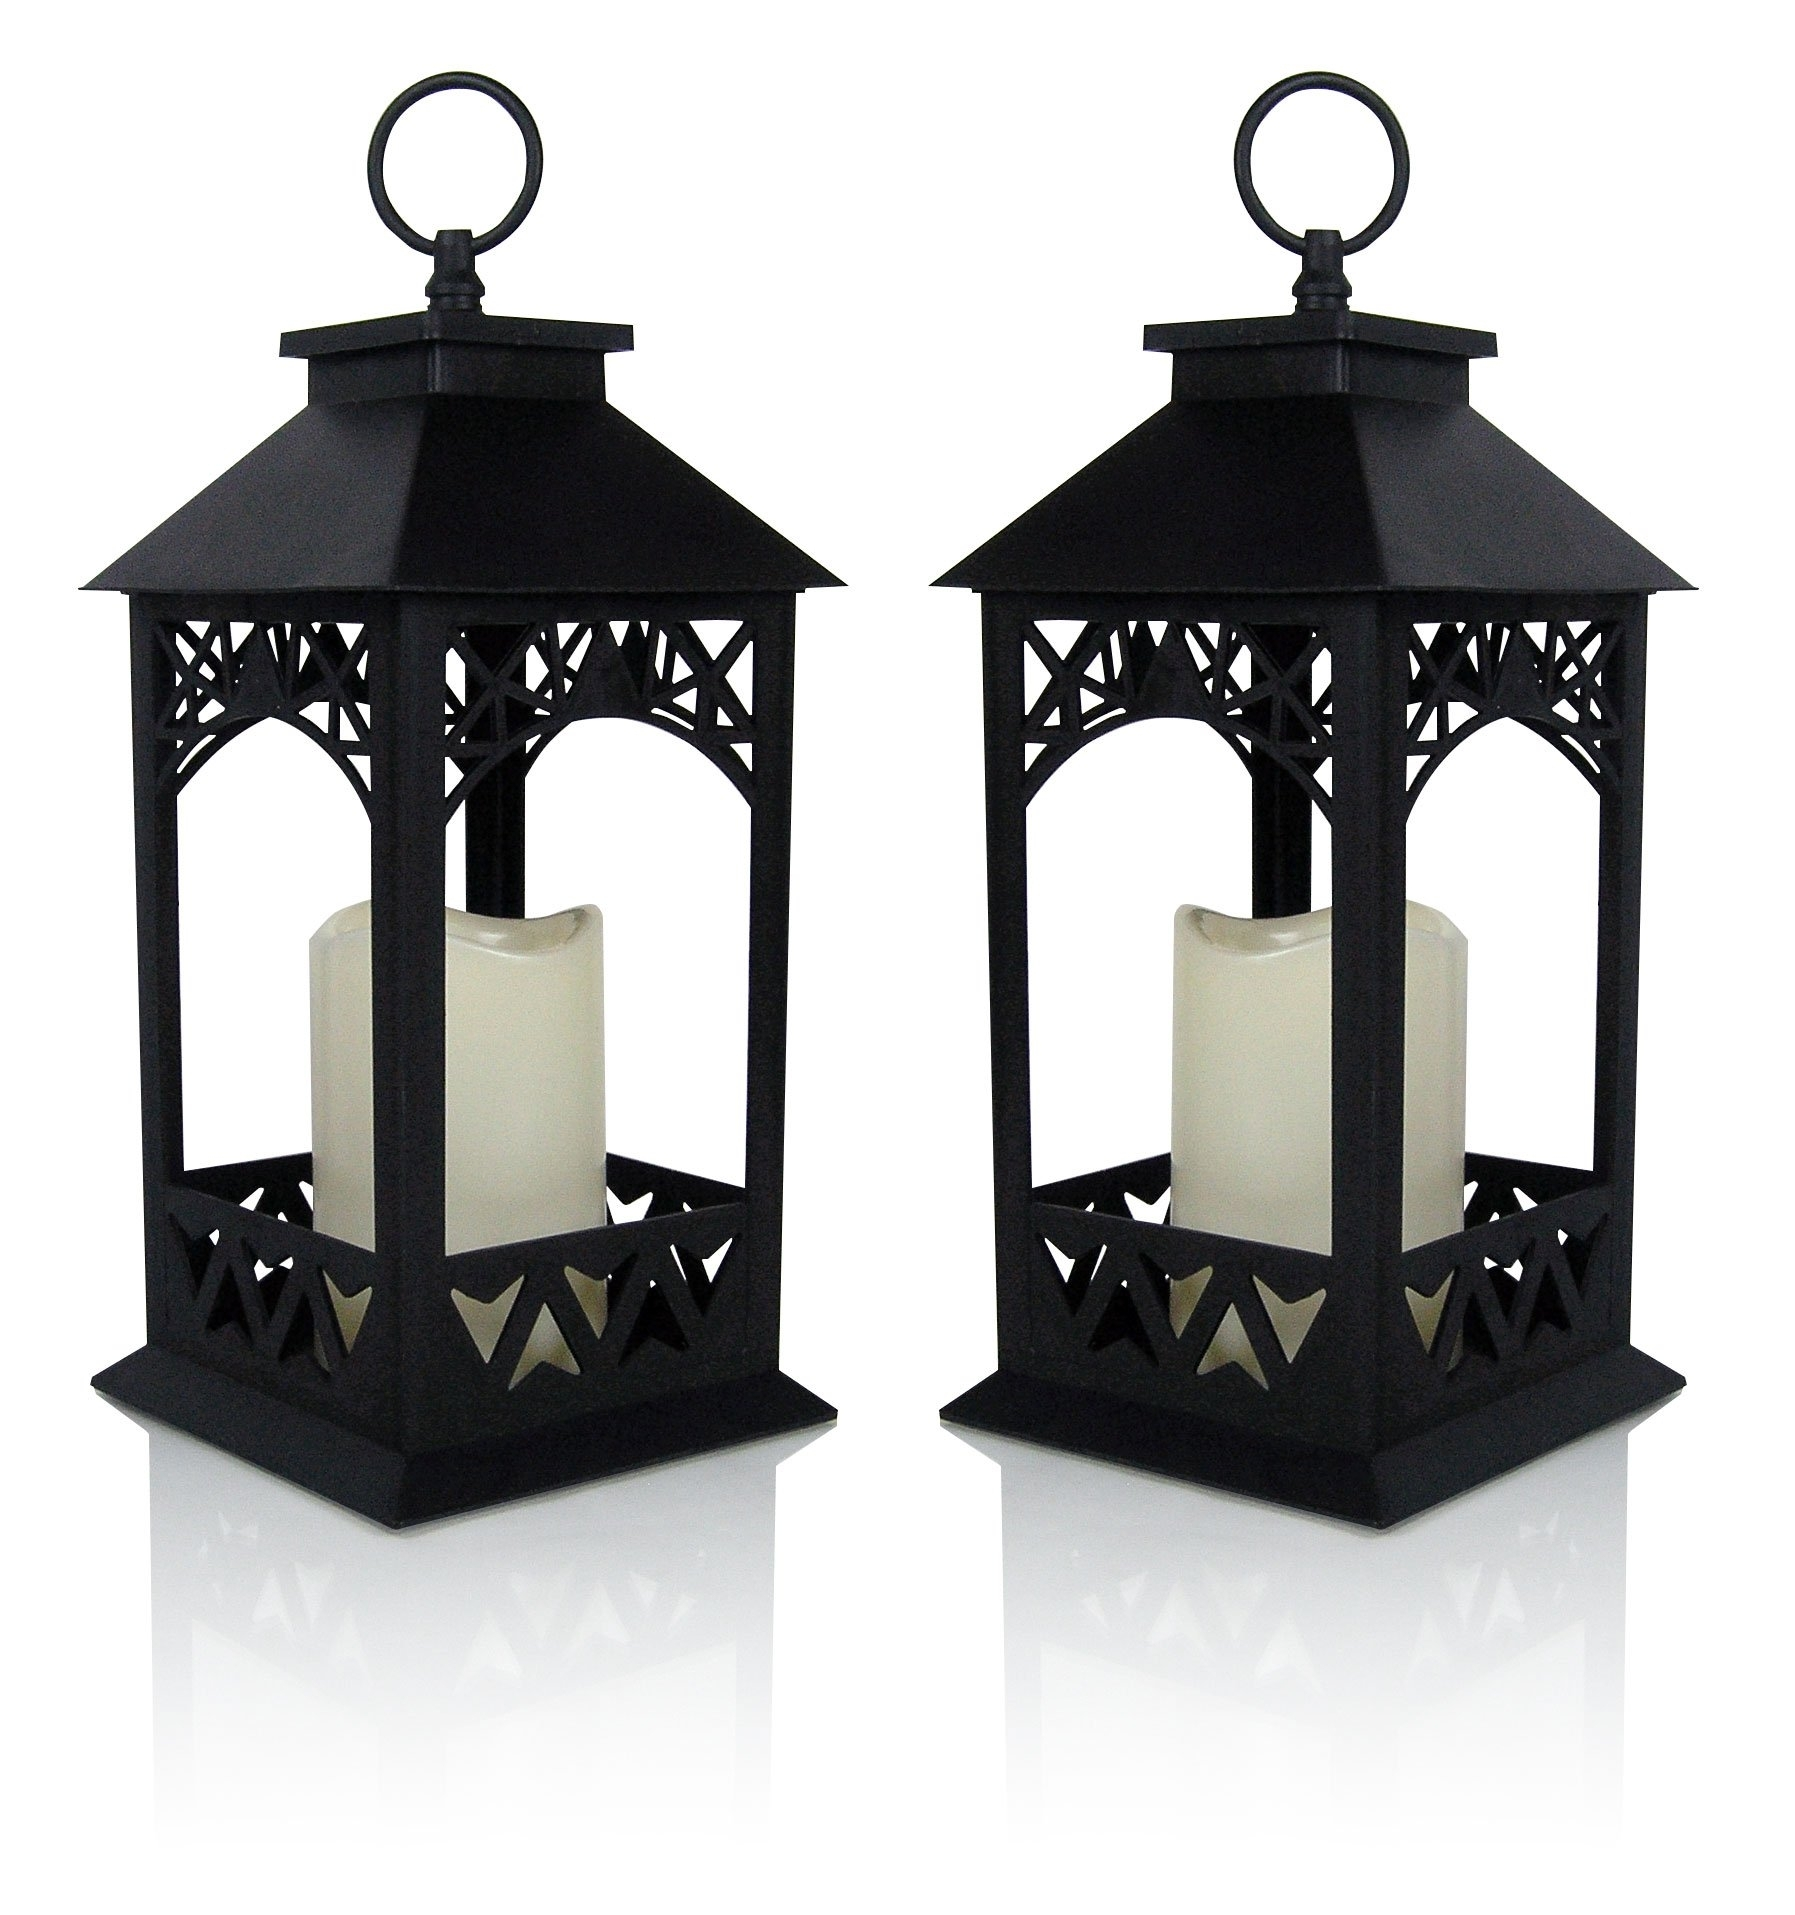 Cheap Outdoor Lanterns Candle, Find Outdoor Lanterns Candle Deals On intended for Outdoor Lanterns With Led Candles (Image 5 of 20)